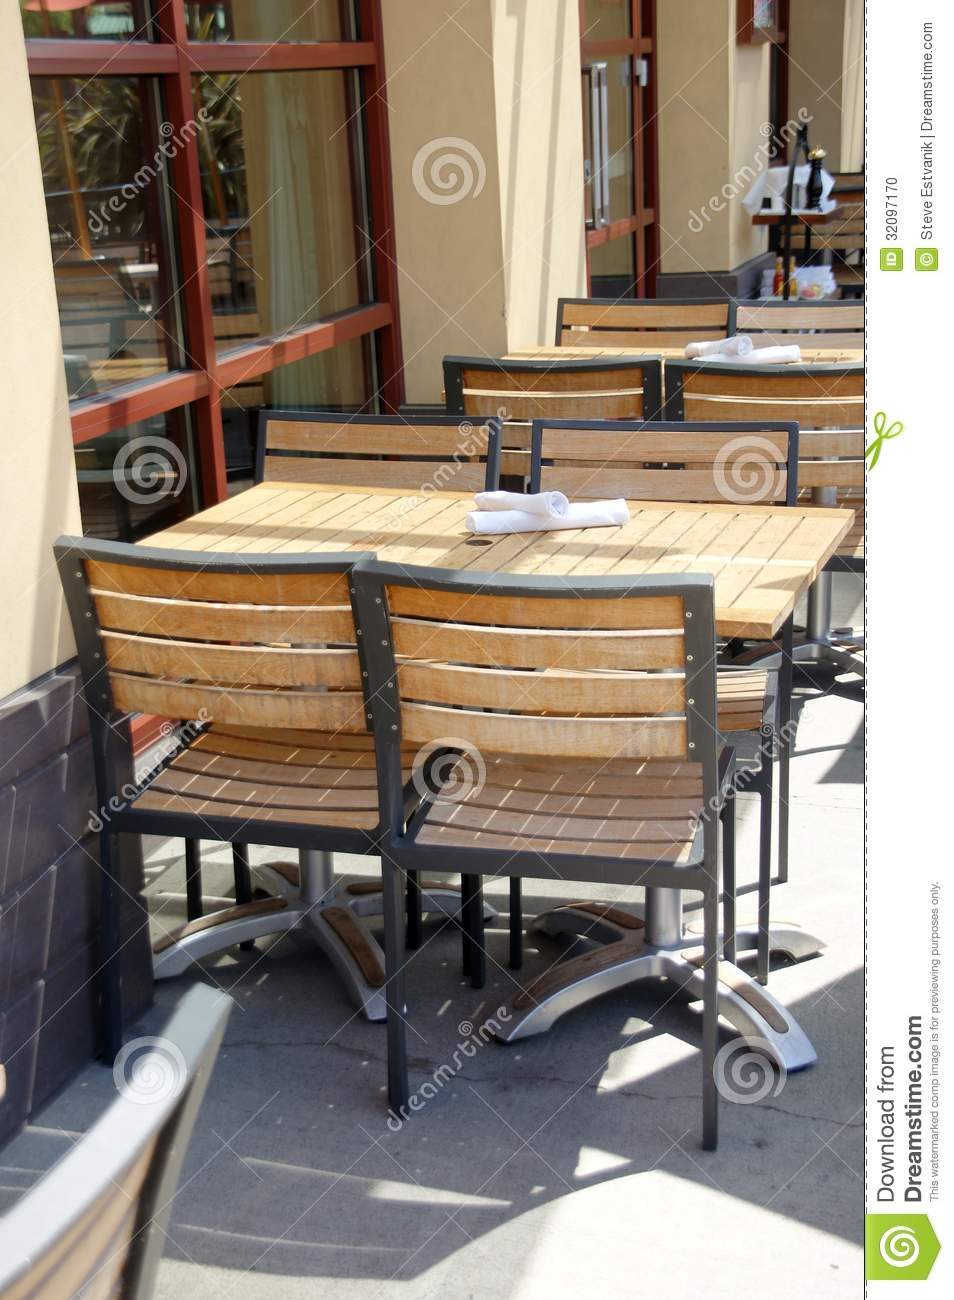 Restaurant Chairs And Tables Wooden Tables And Chairs In Outdoor Restaurant Stock Photo Image